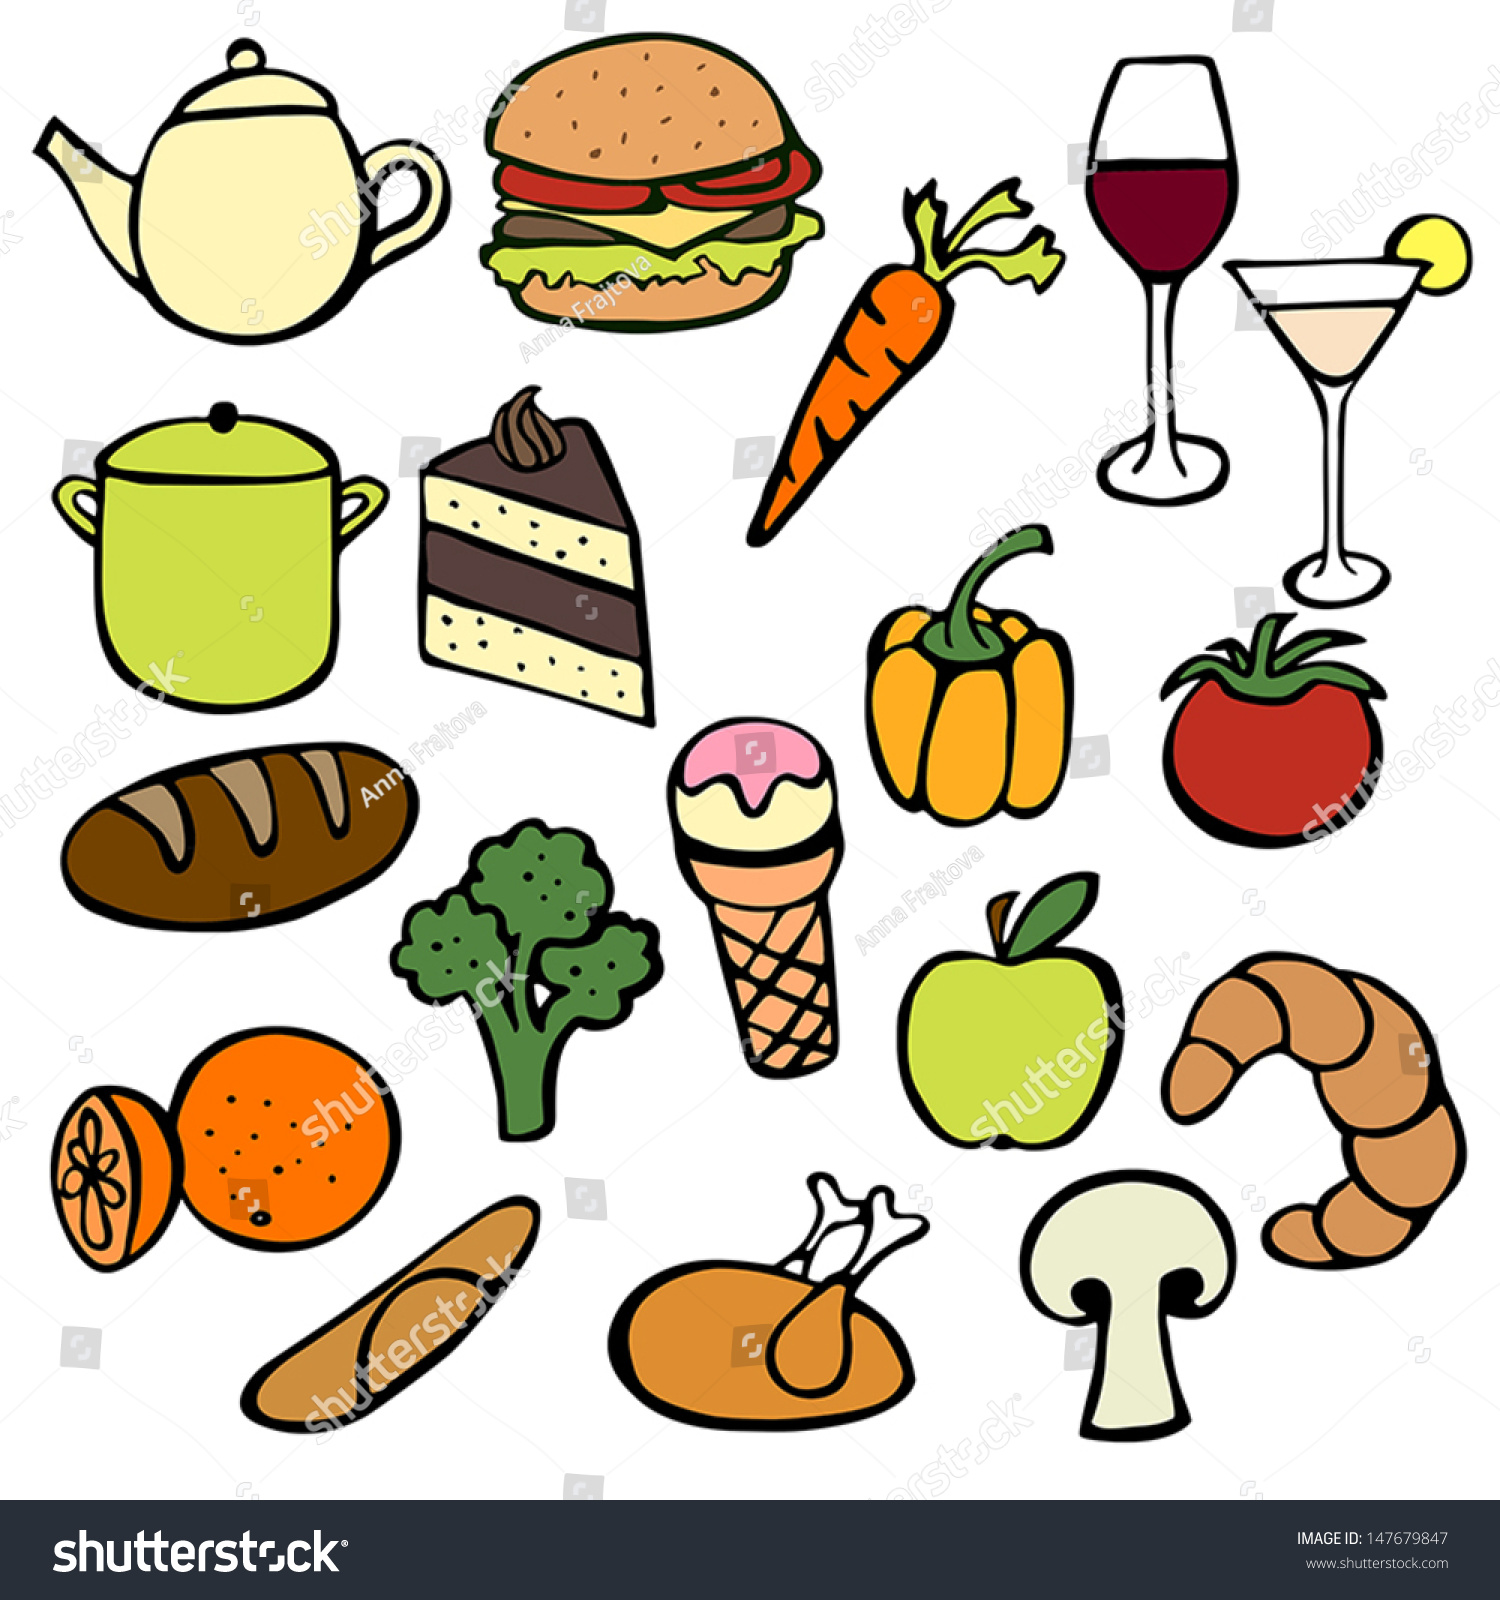 Kitchen Tools Drawings collection cute drawings food kitchen tools stock vector 147679847